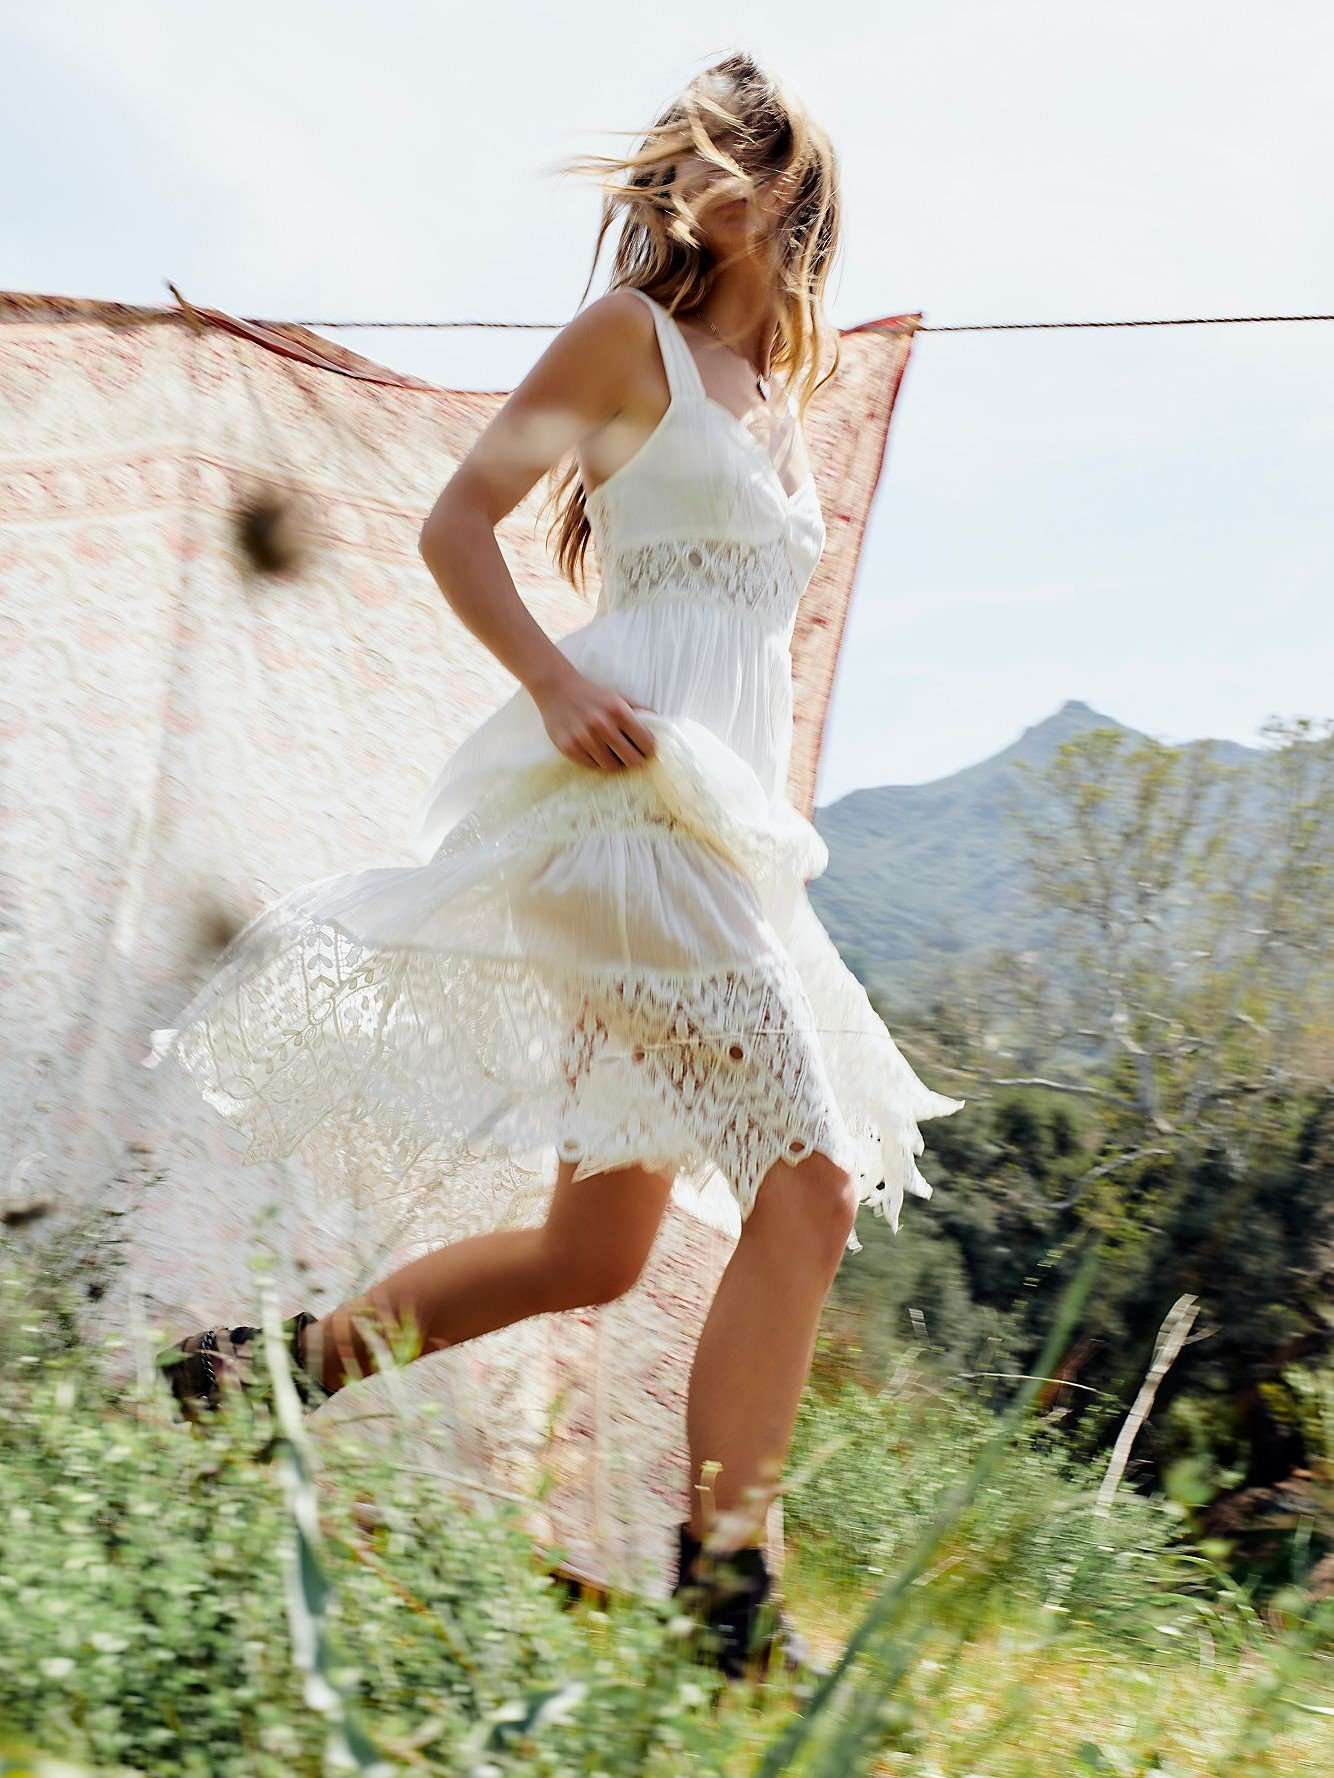 FREEPEOPLE Caught Your Eye Maxi White Dress, free people dresses ... the cool girls affordable label